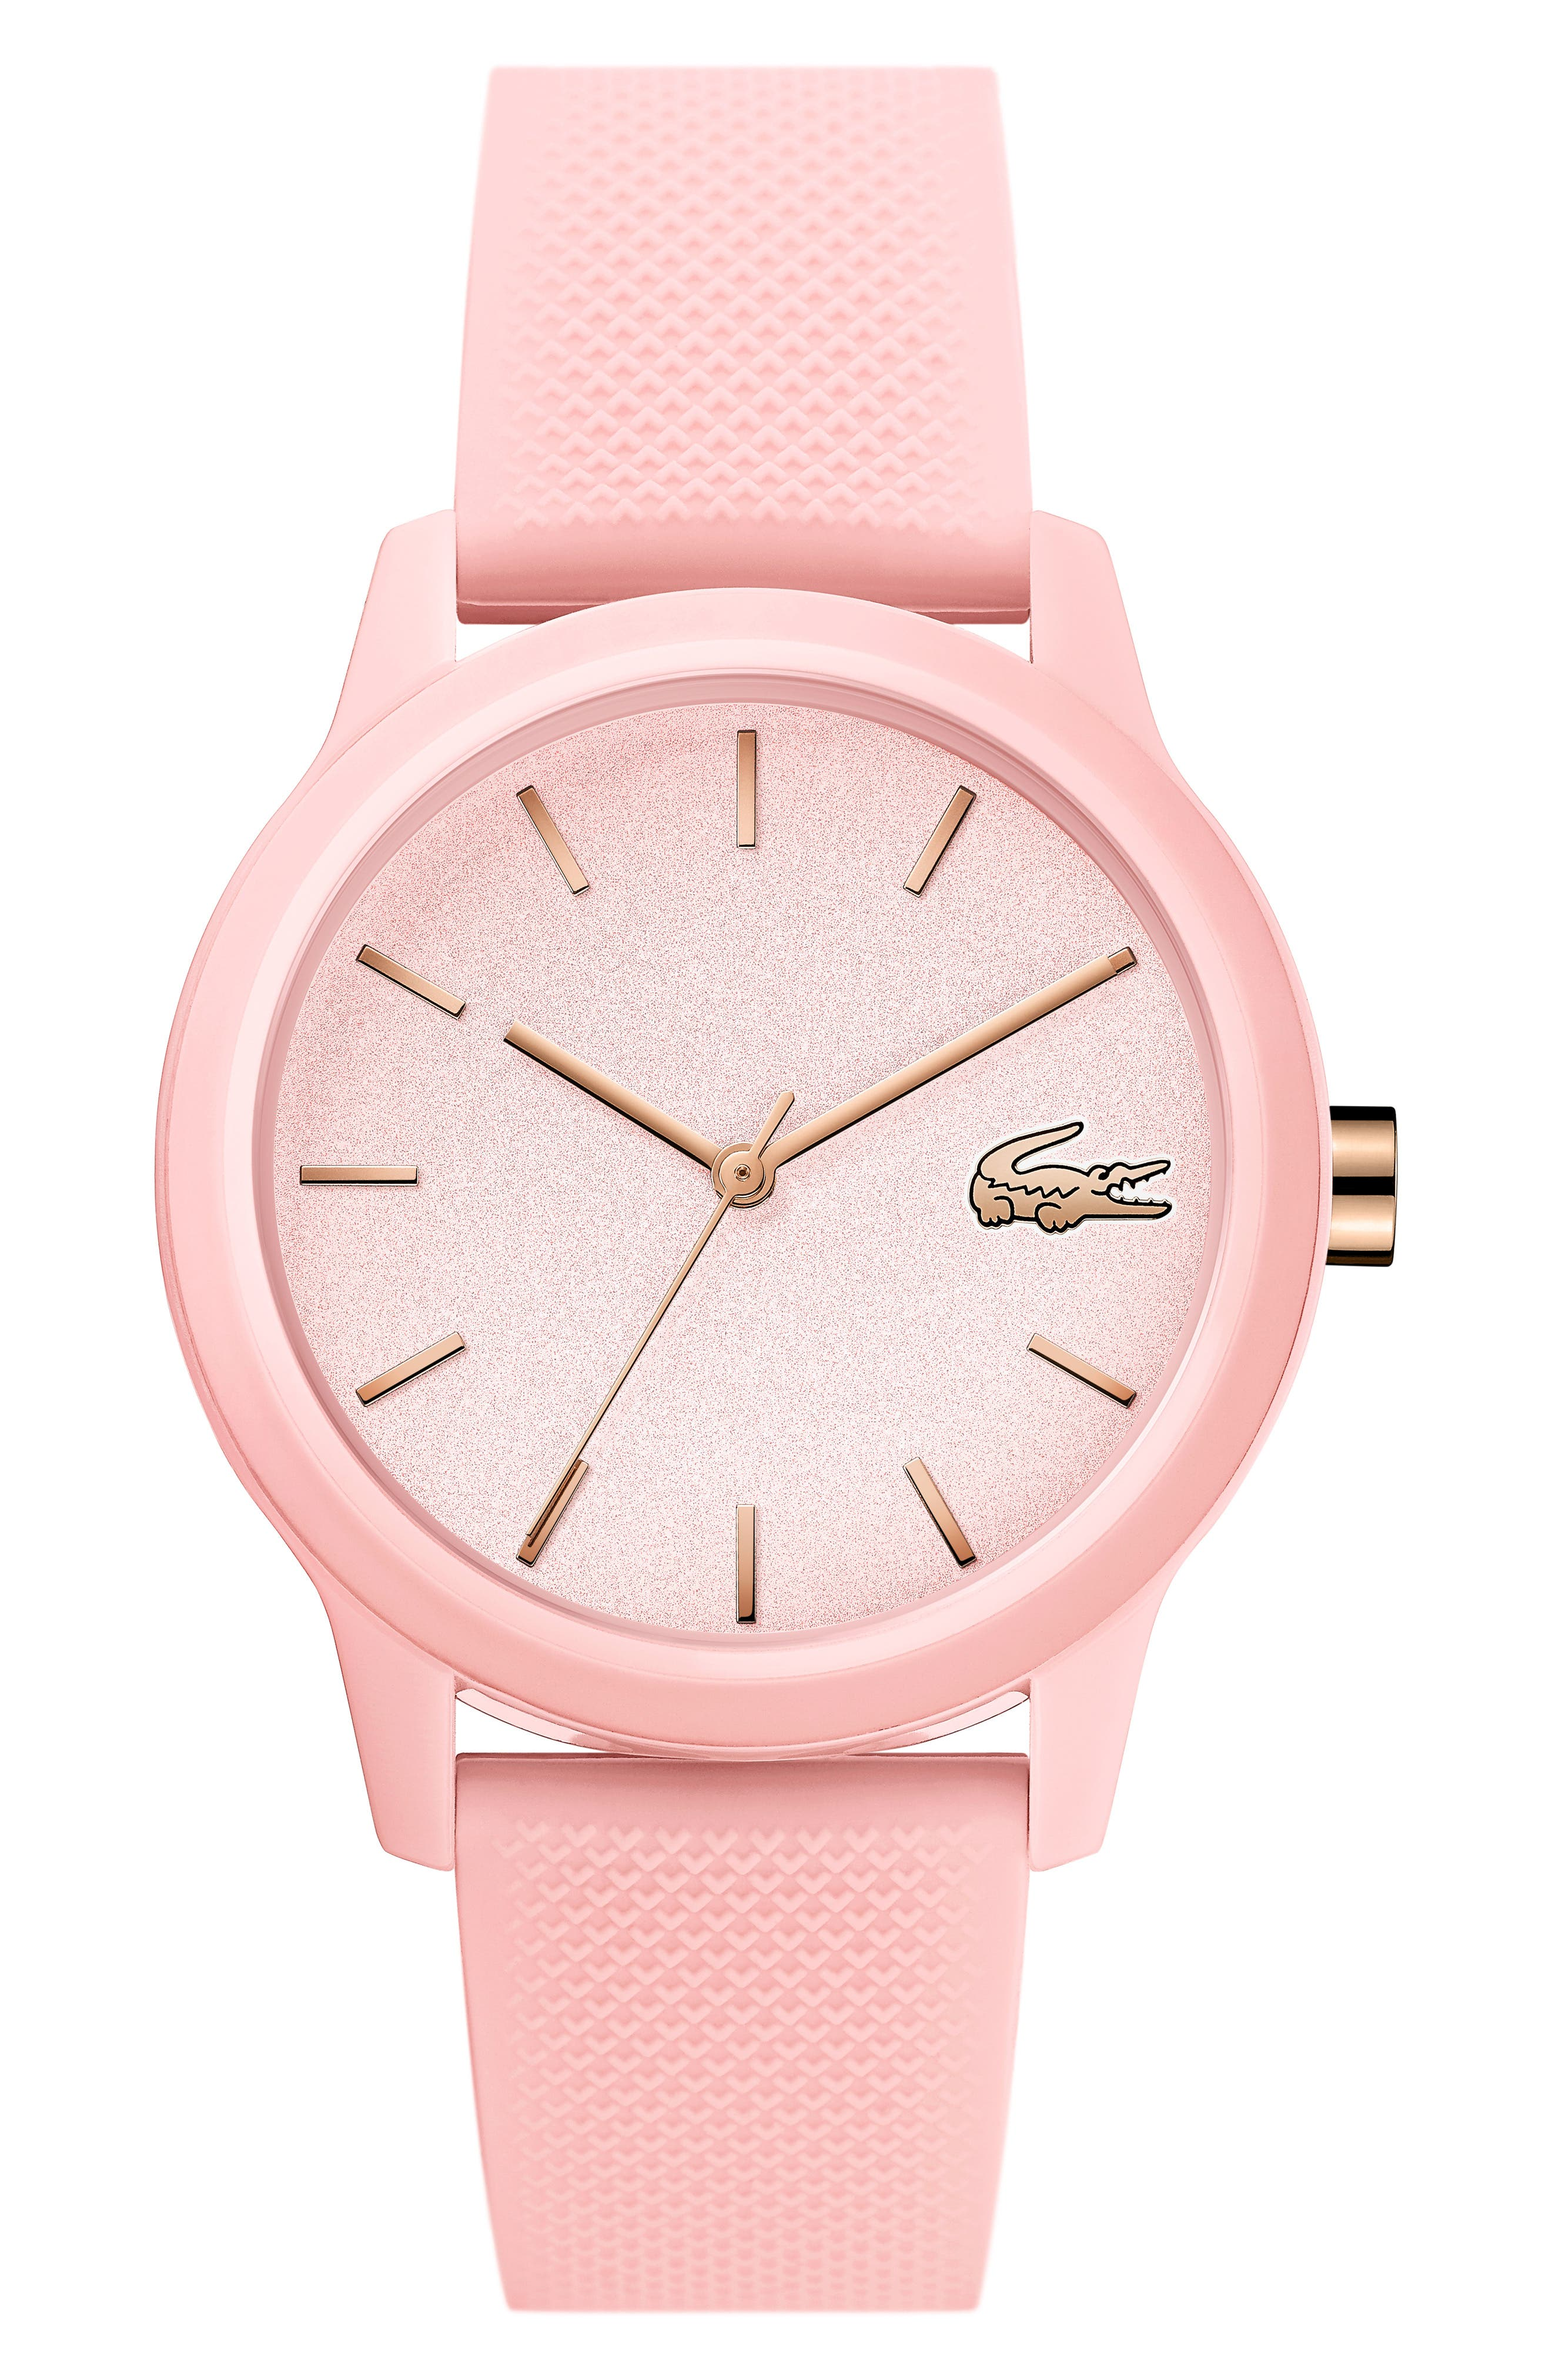 LACOSTE 12.12 Silicone Strap Watch, 36mm, Main, color, PINK